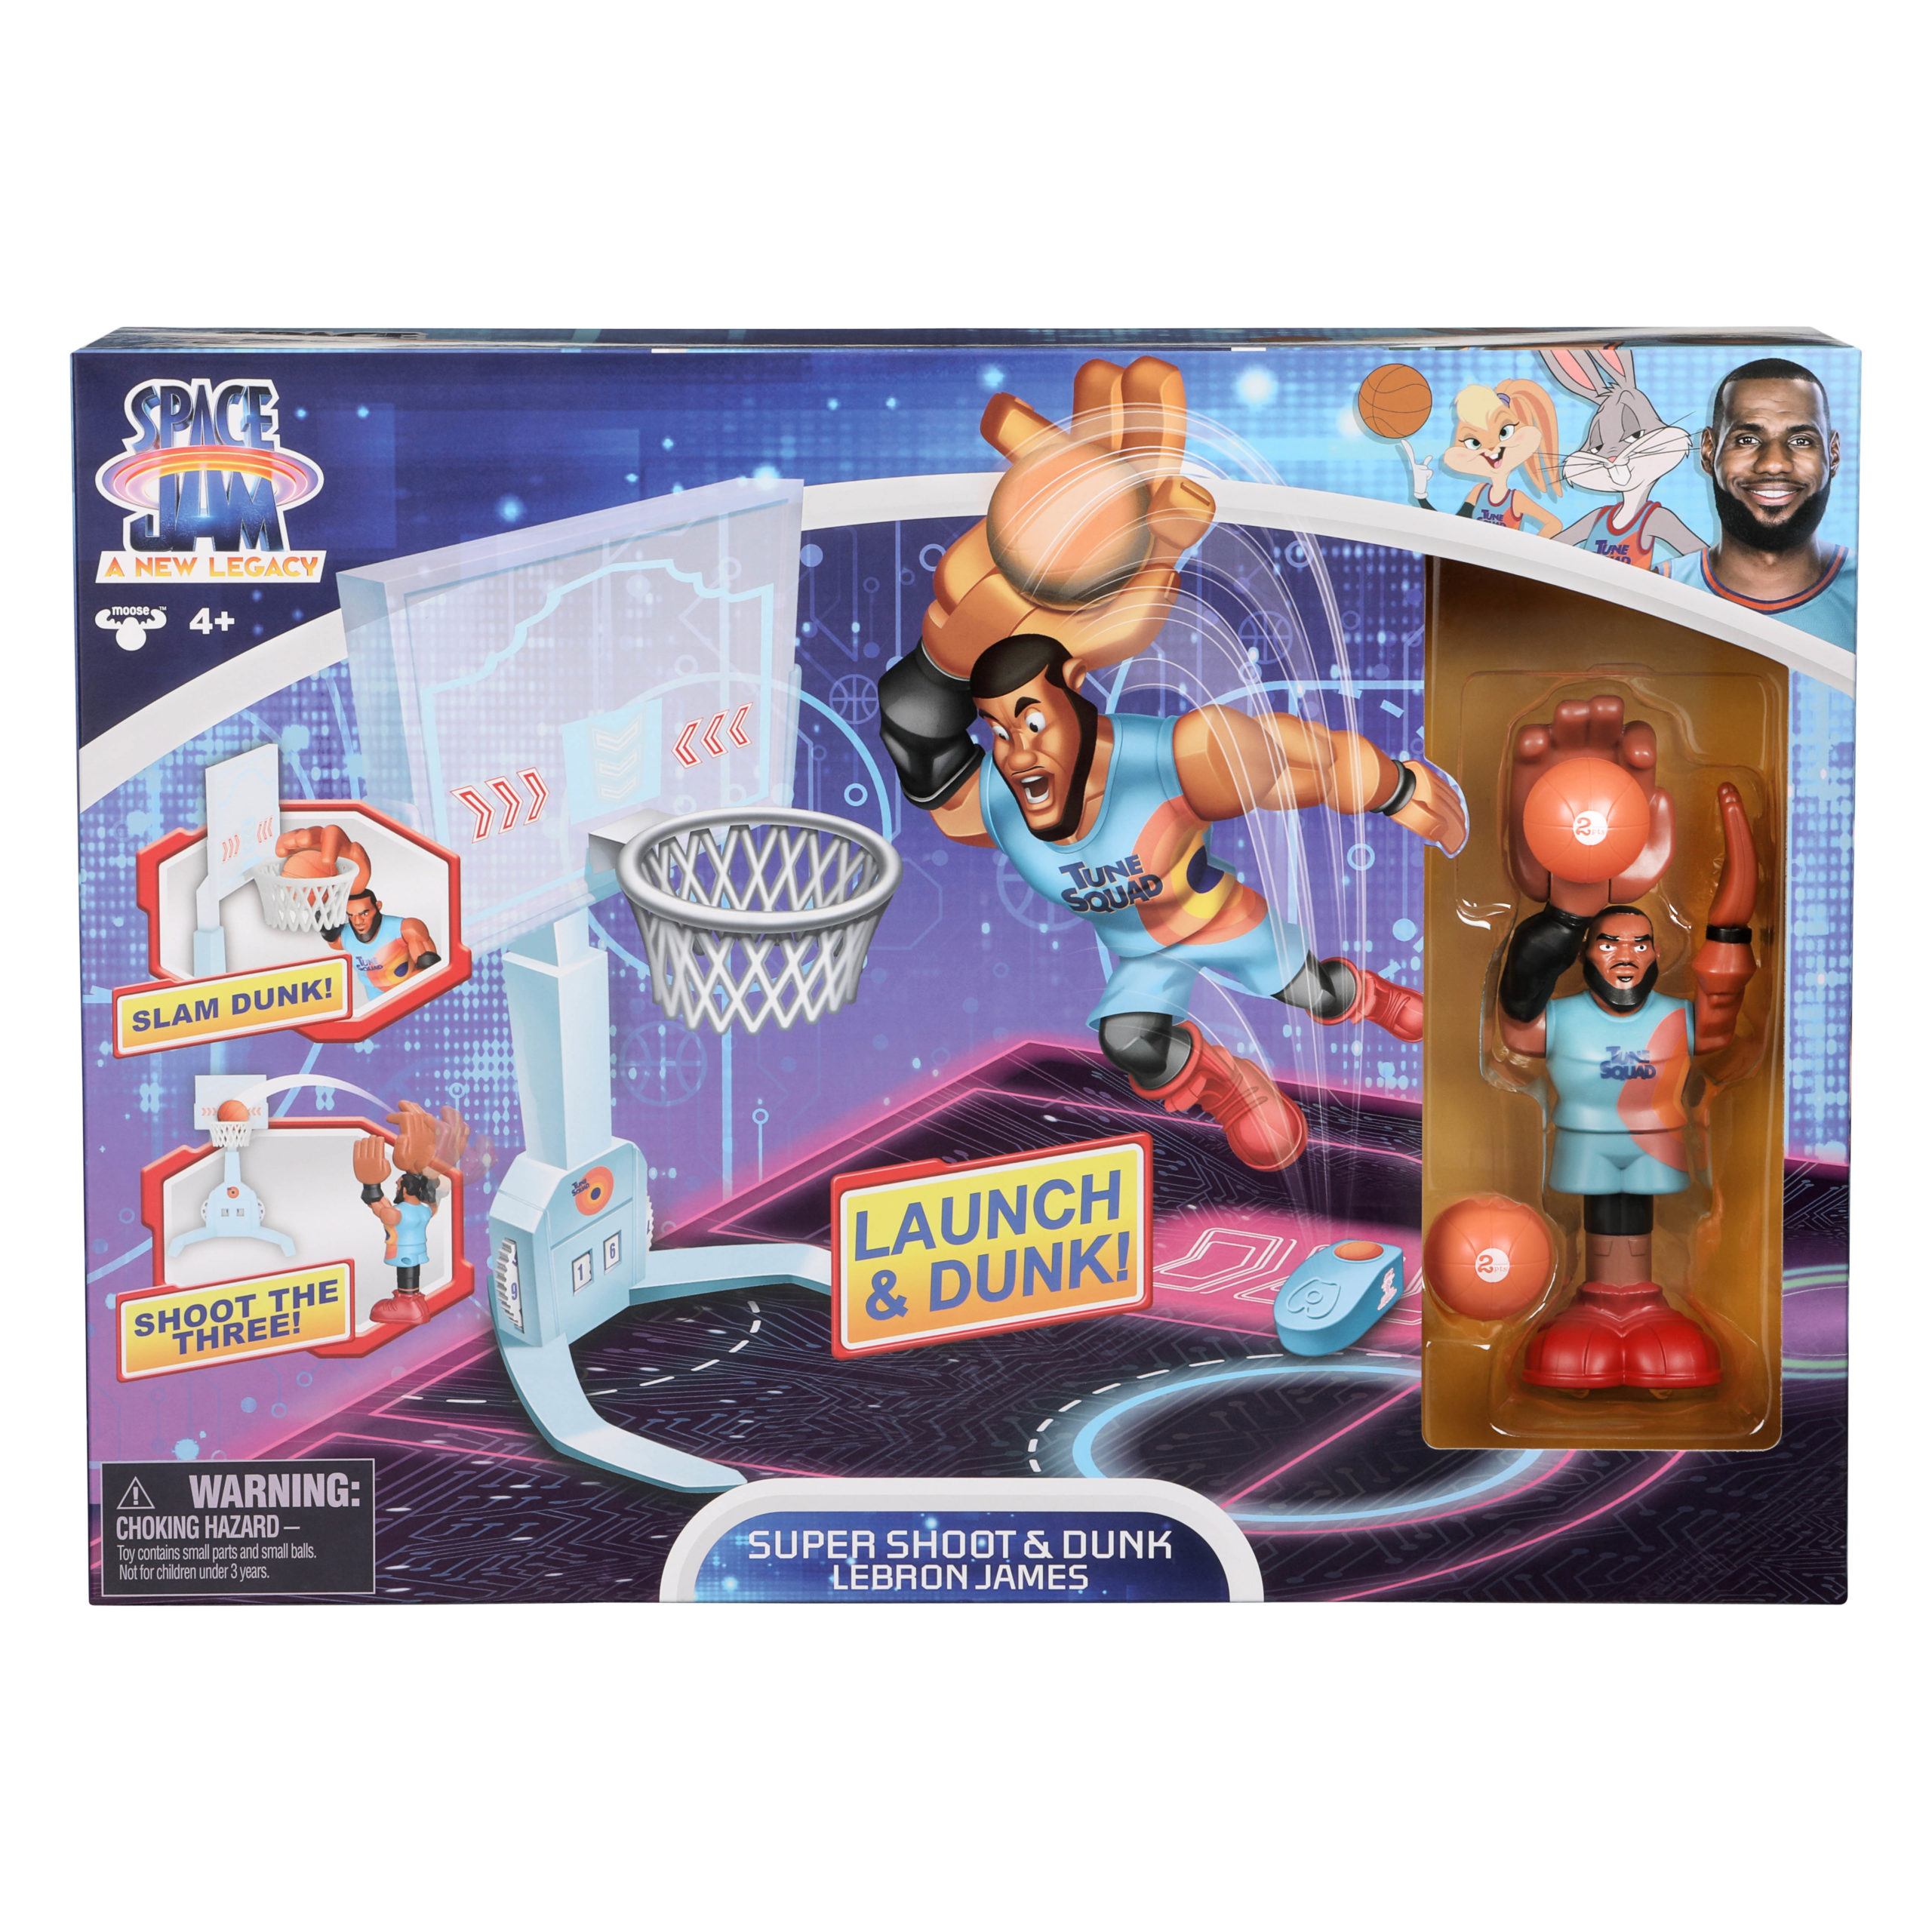 Moose Toys launches Space Jam: A New Legacy toys